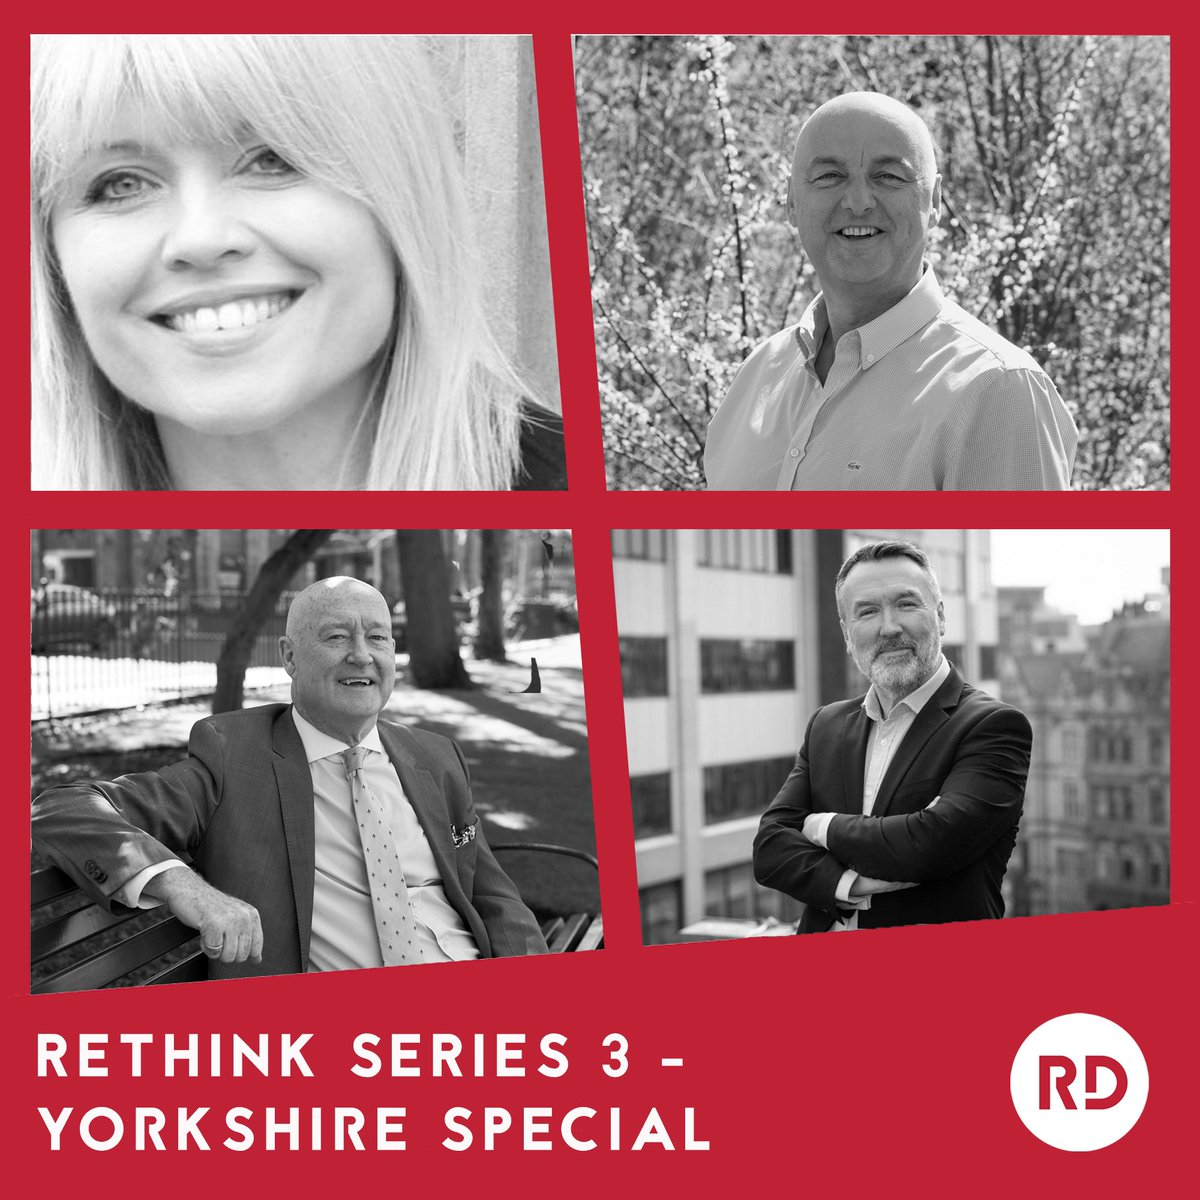 Thank you to my guest on the yorkshire series @christinetalbot @WayFinderTony @davejonesreward @StuartClarkeUK